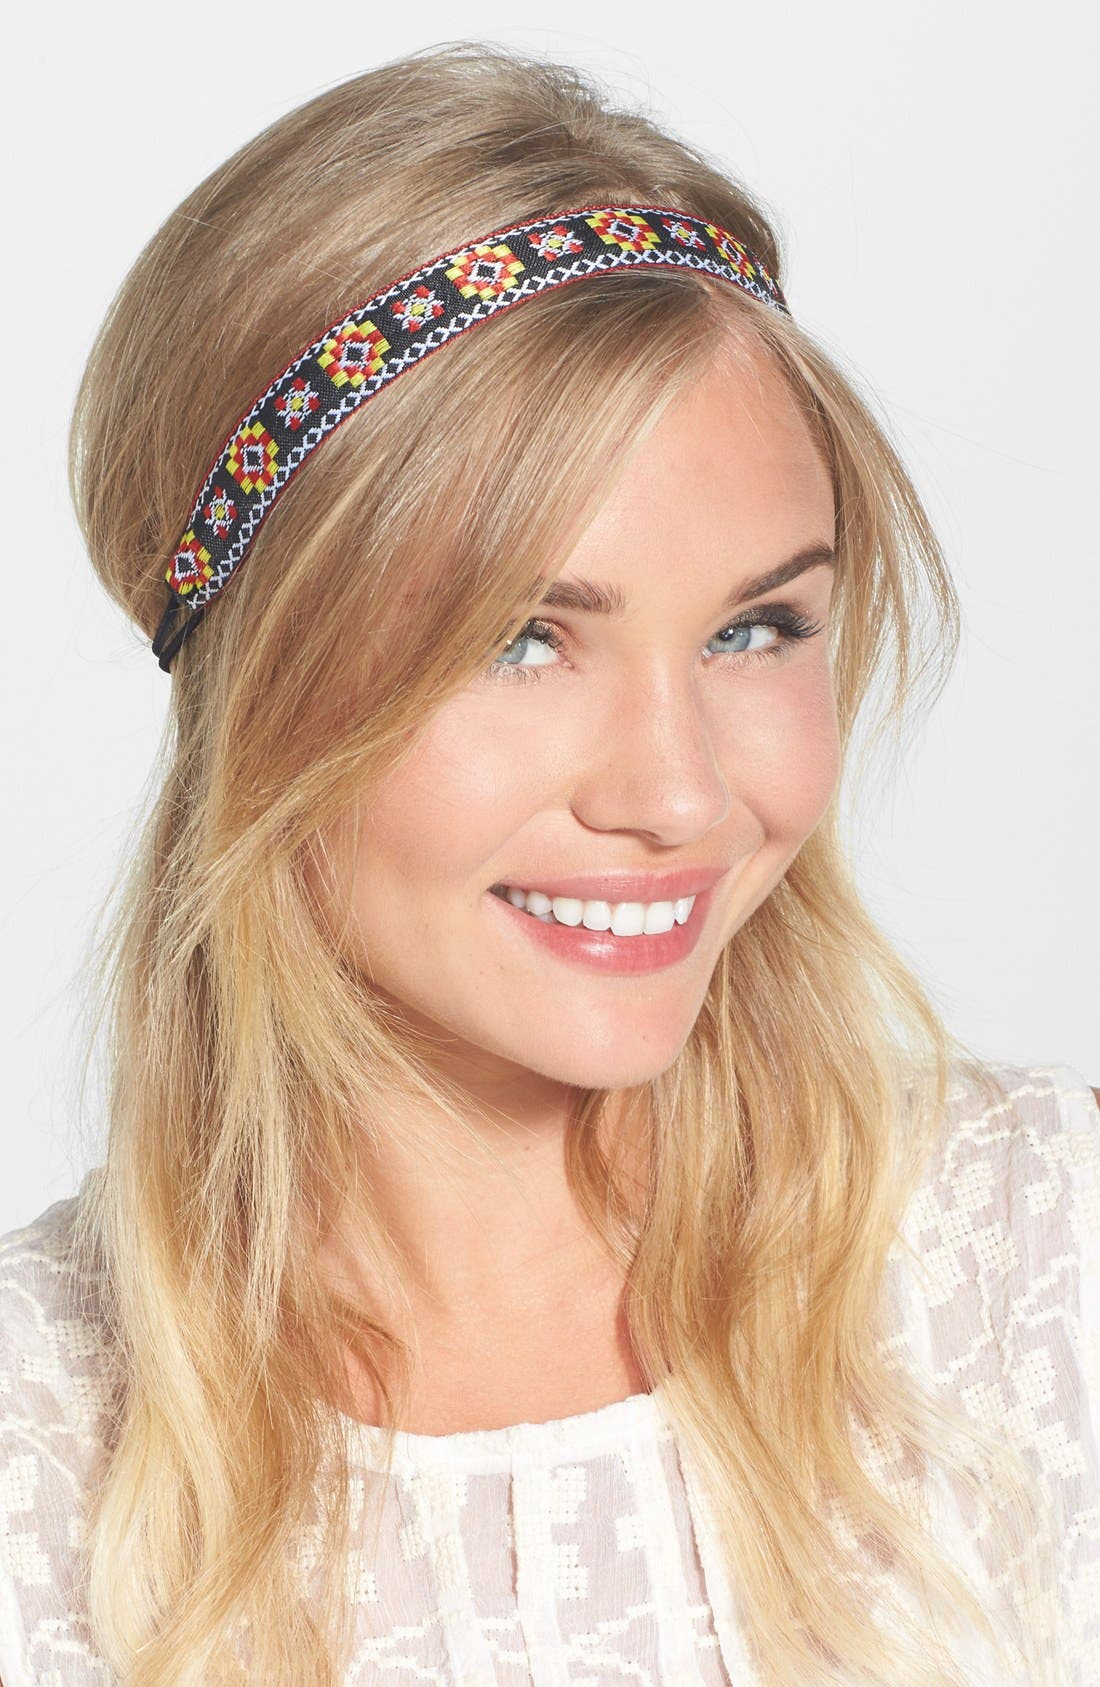 Main Image - Berry 'Dancing Floral' Head Wrap